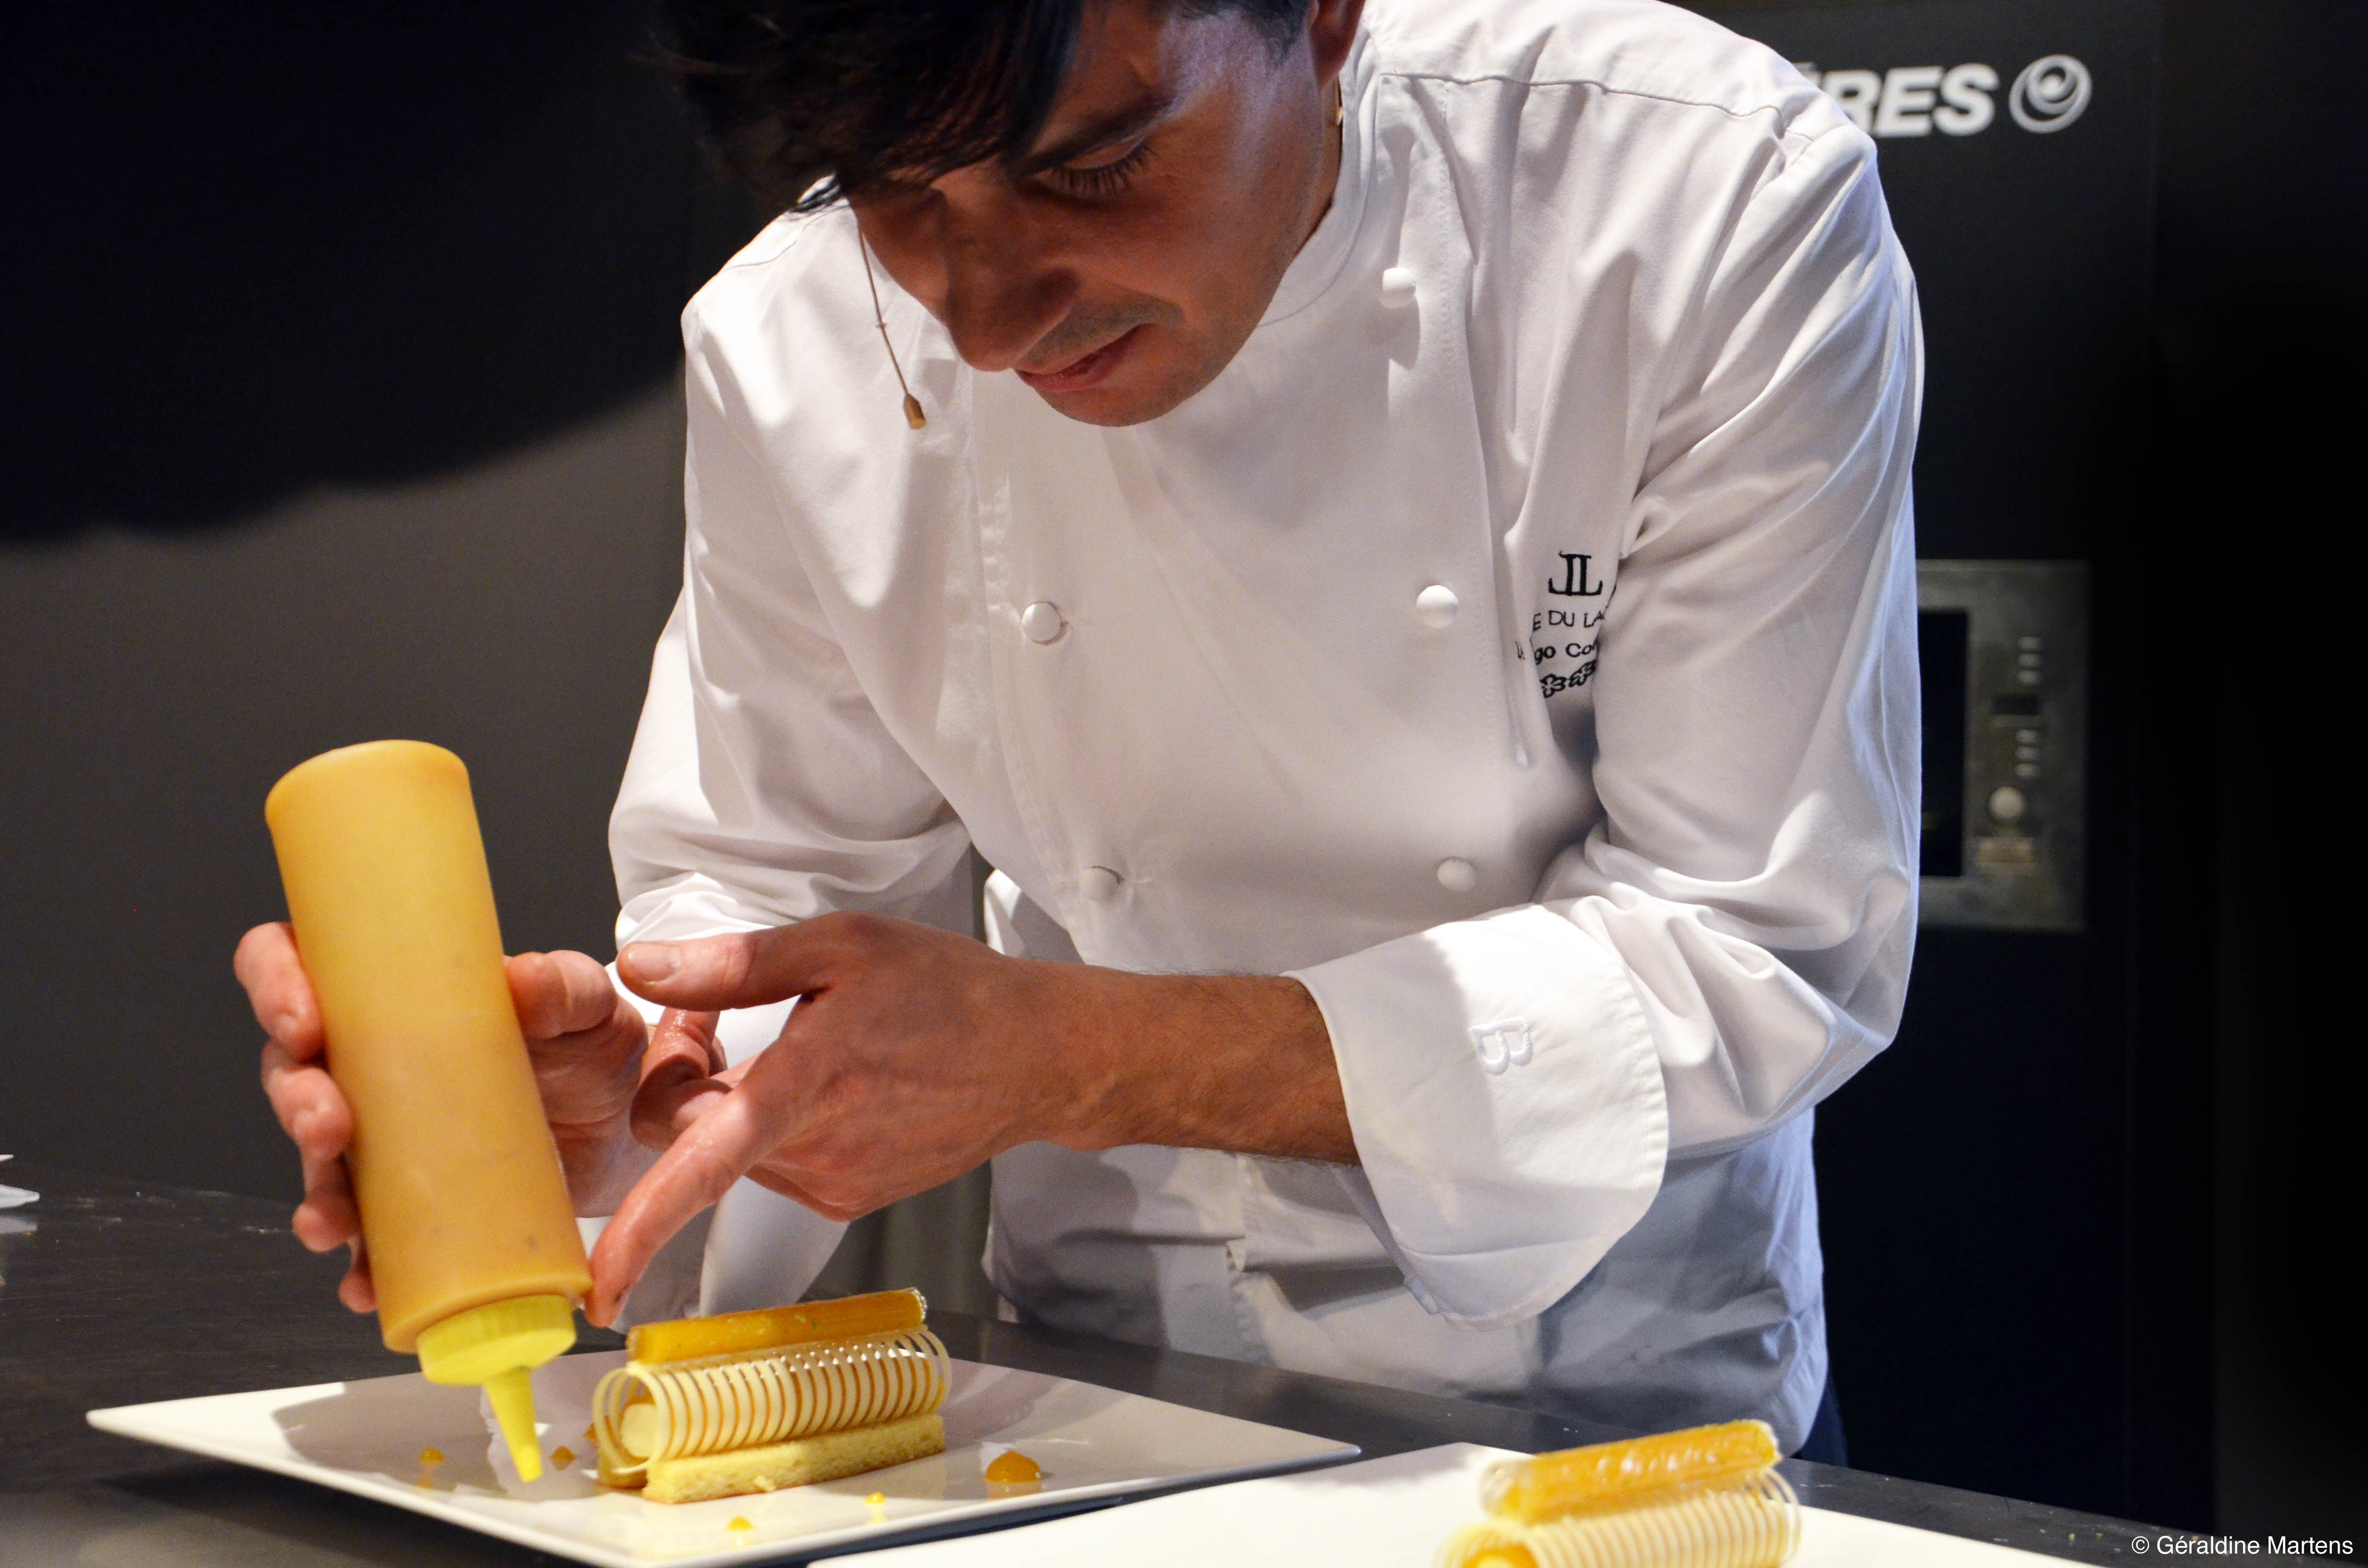 hugo correia chef patissier